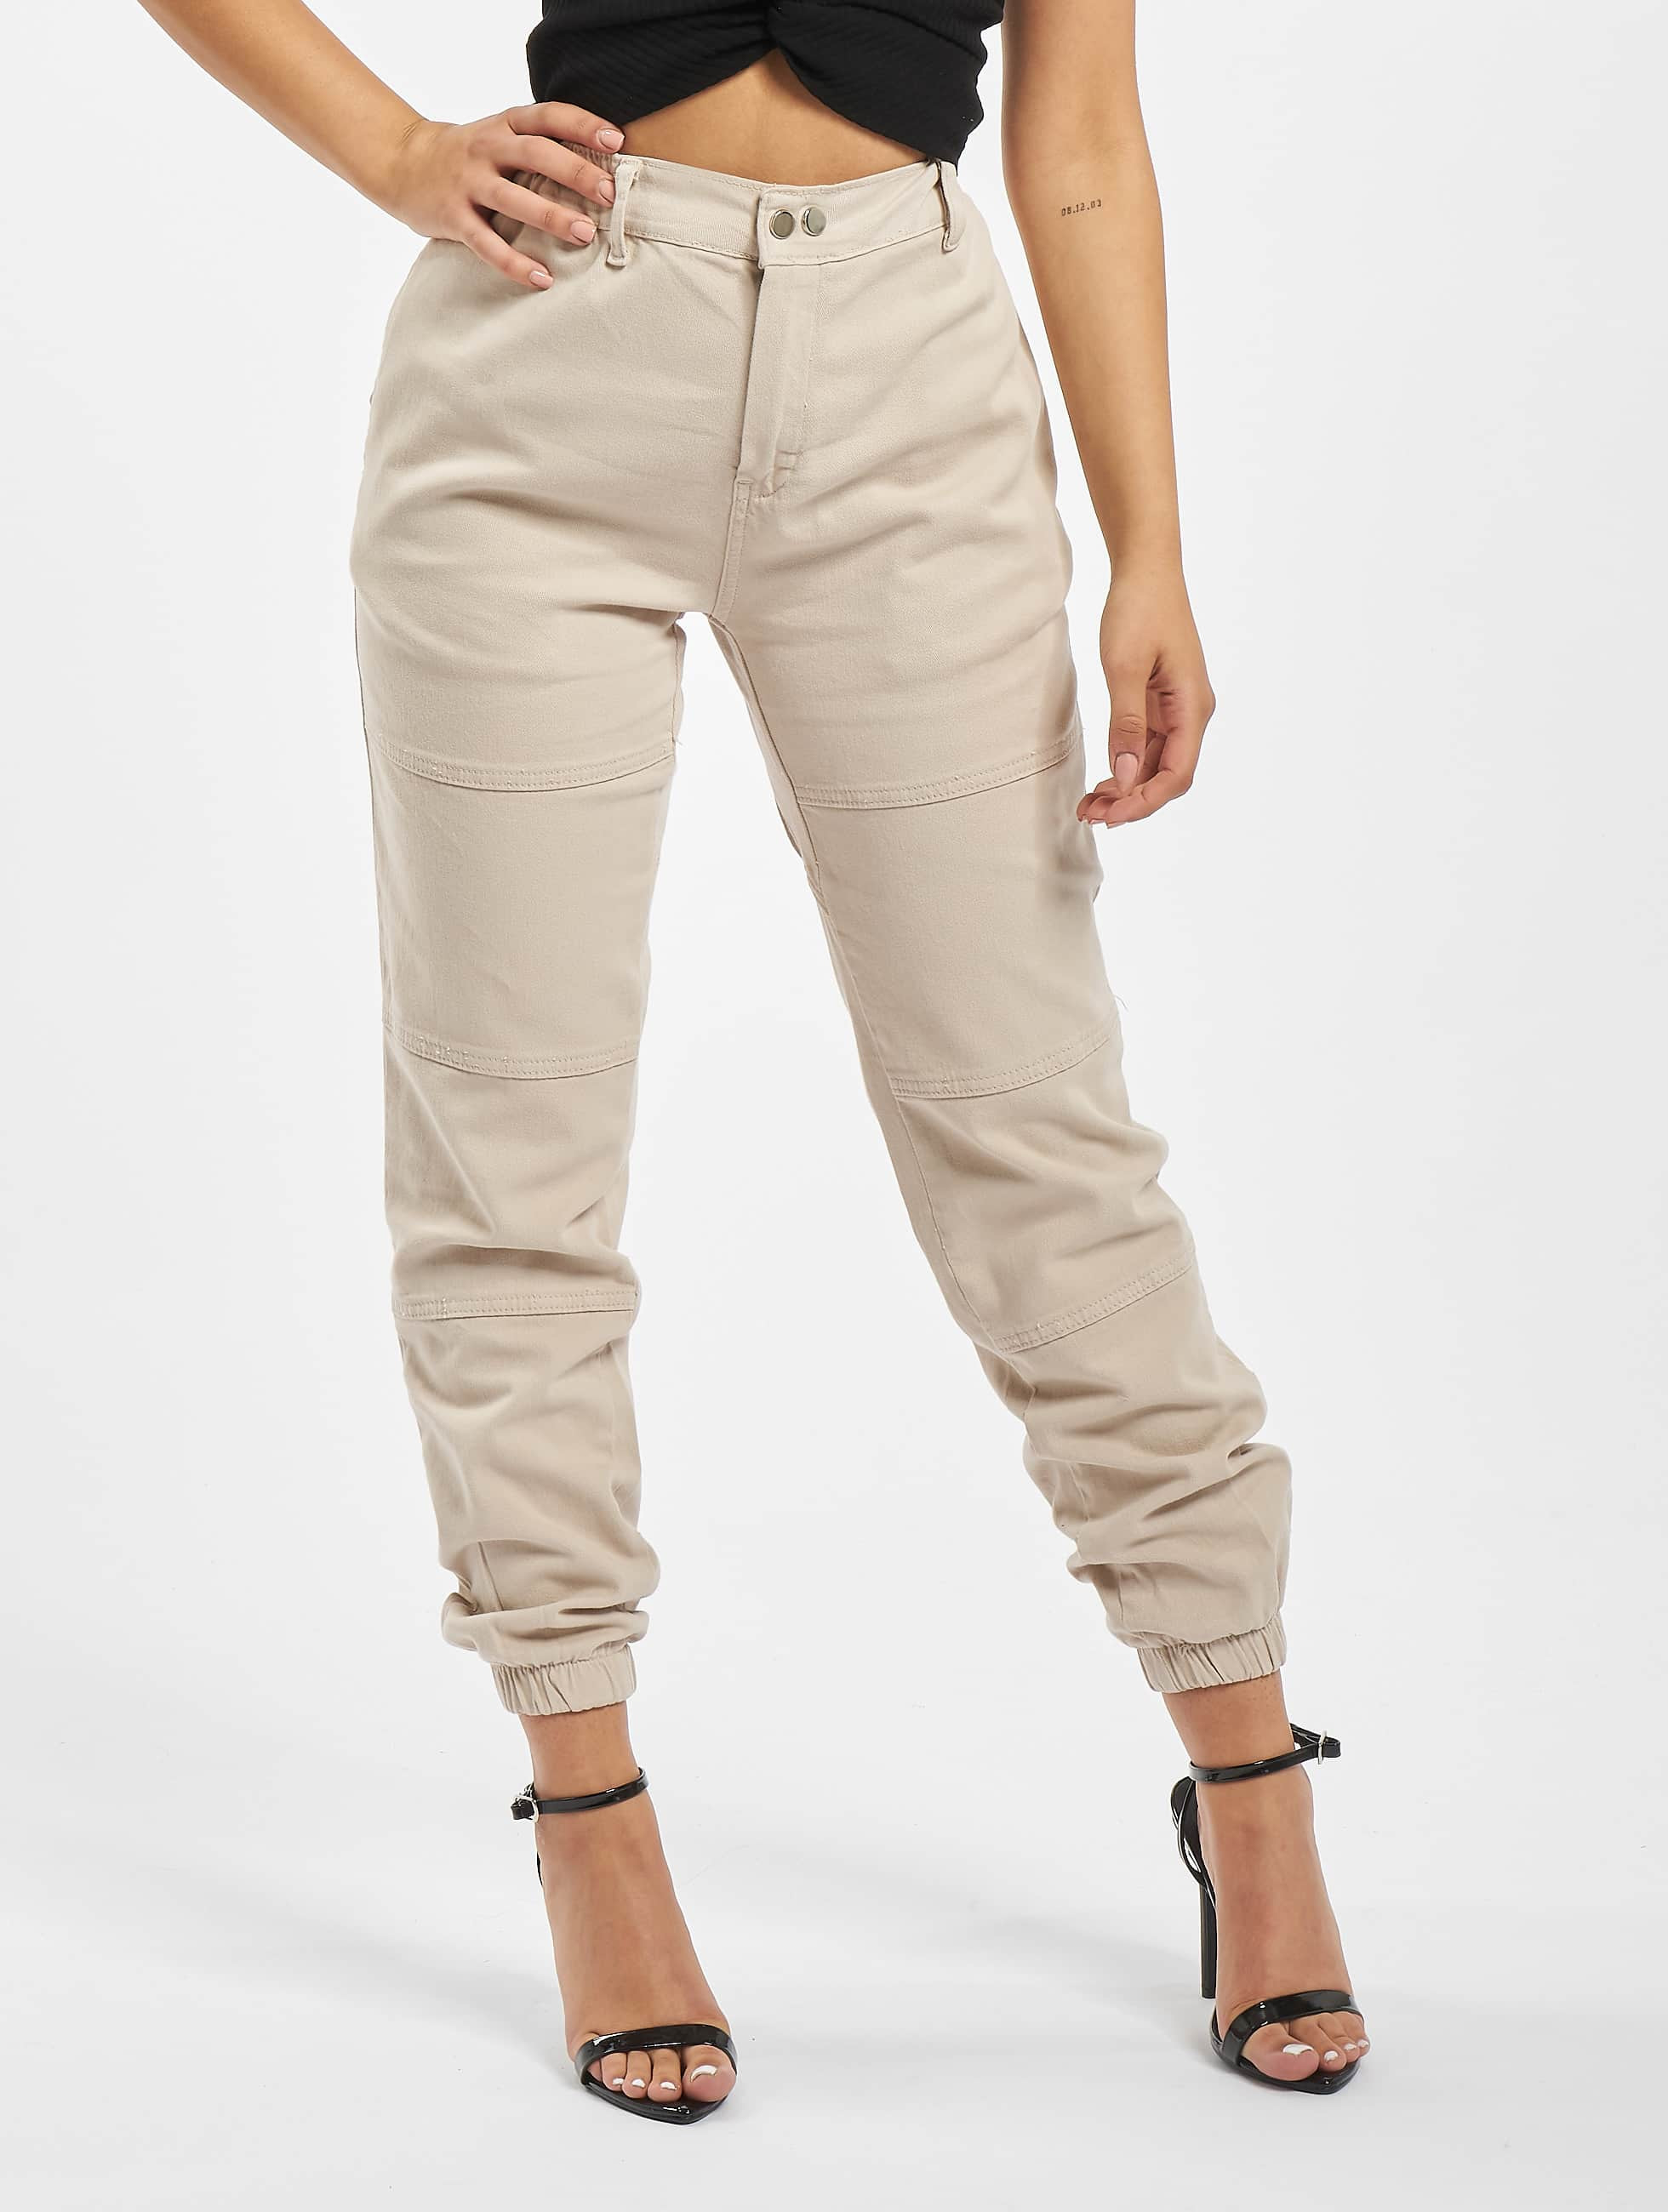 DEF / Chino Xana in beige XL  (L 34)